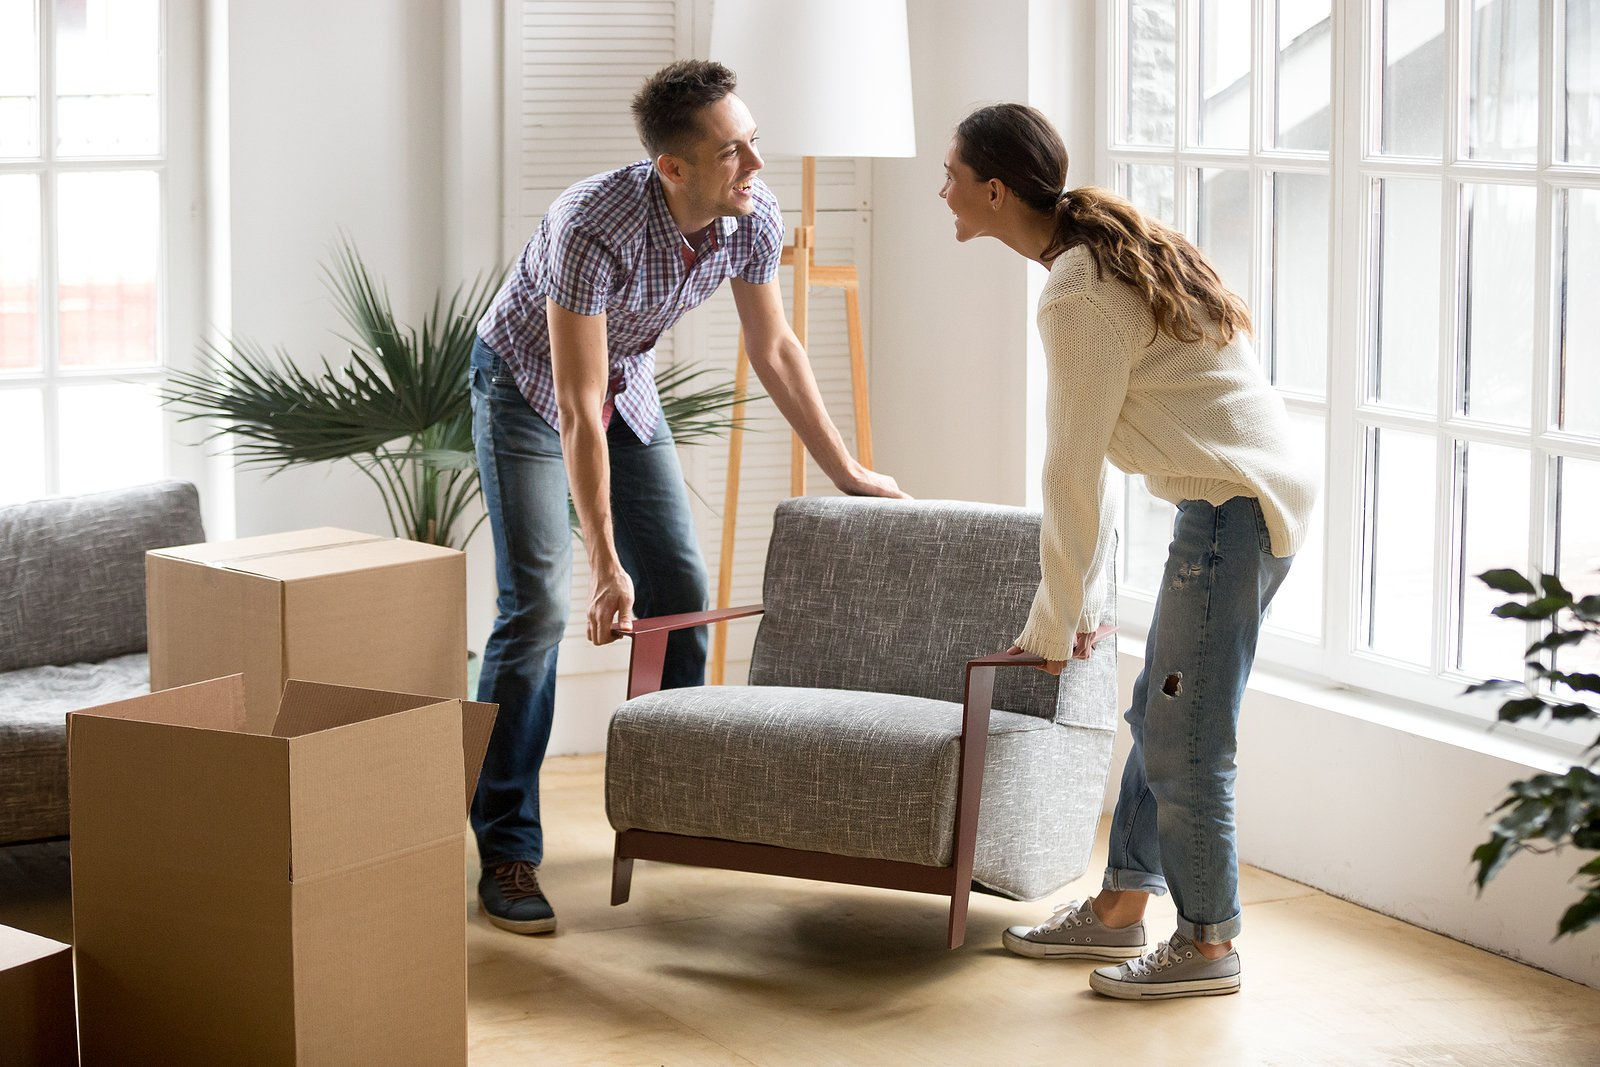 Keep It, Sell It Or Throw It Away? Furniture Riddles